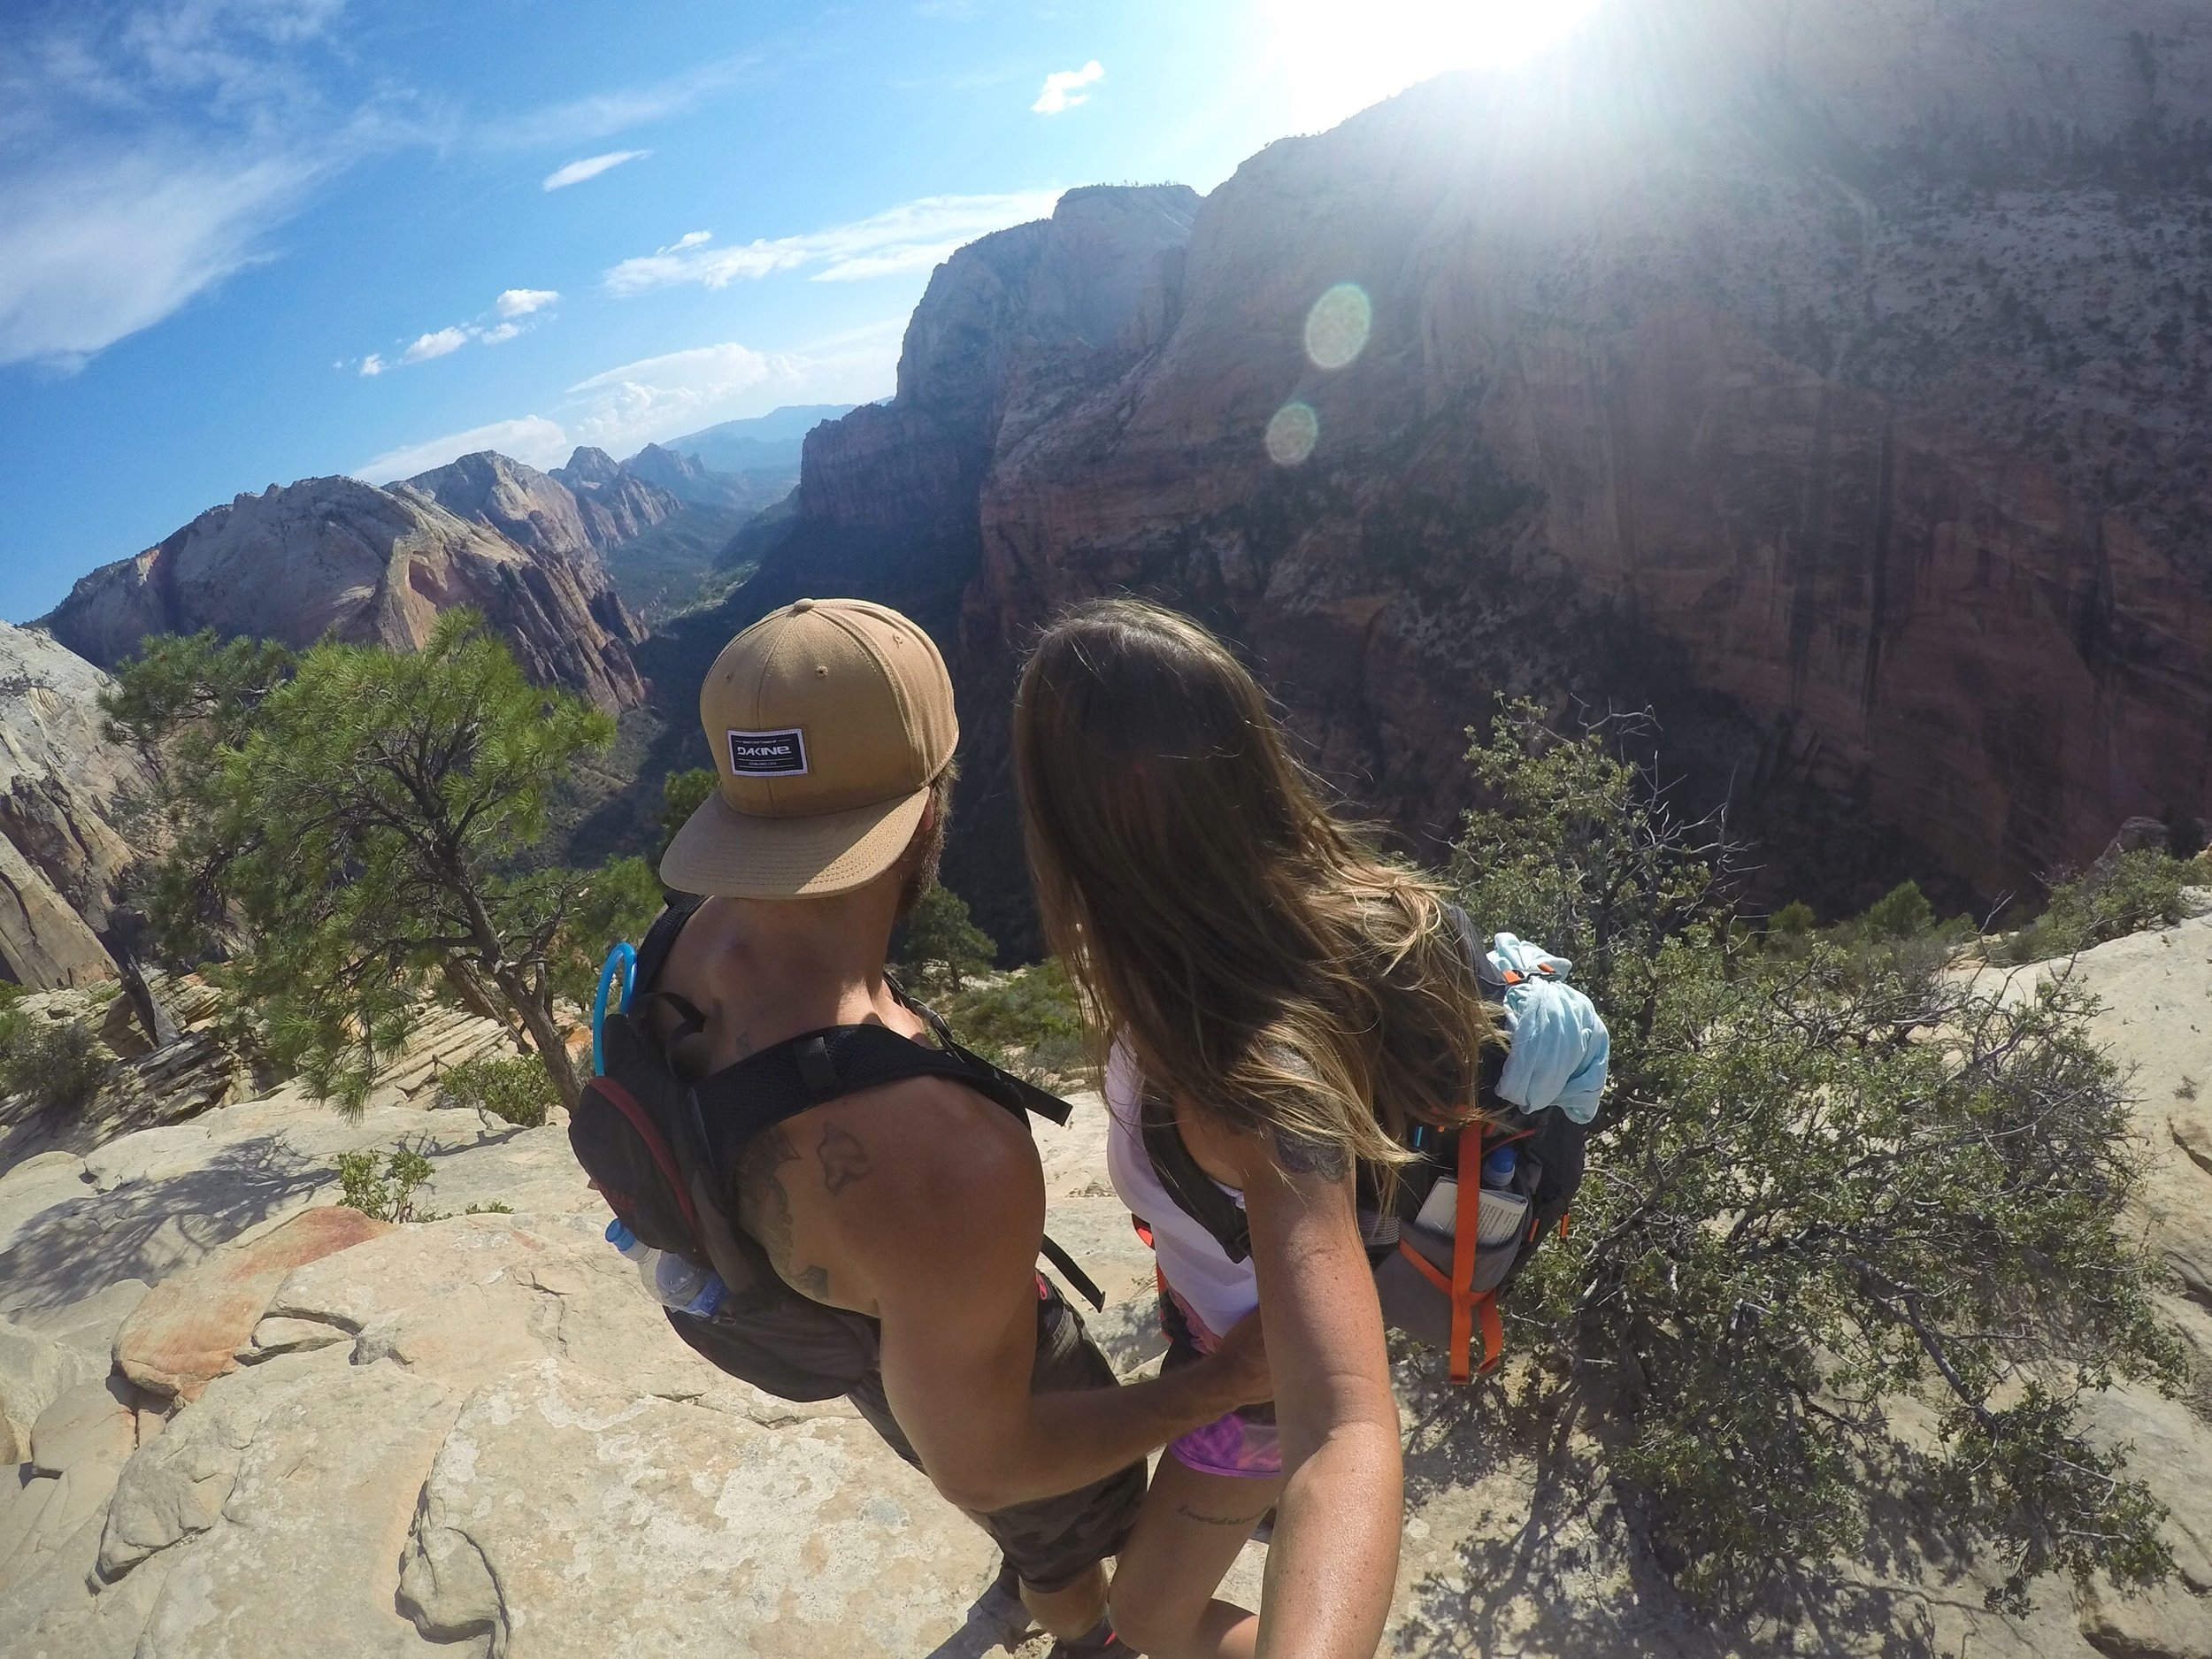 Aaron Medeiros and Juliana Salles at Angel's Landing - Zion National Park, Utah - 3 Days*